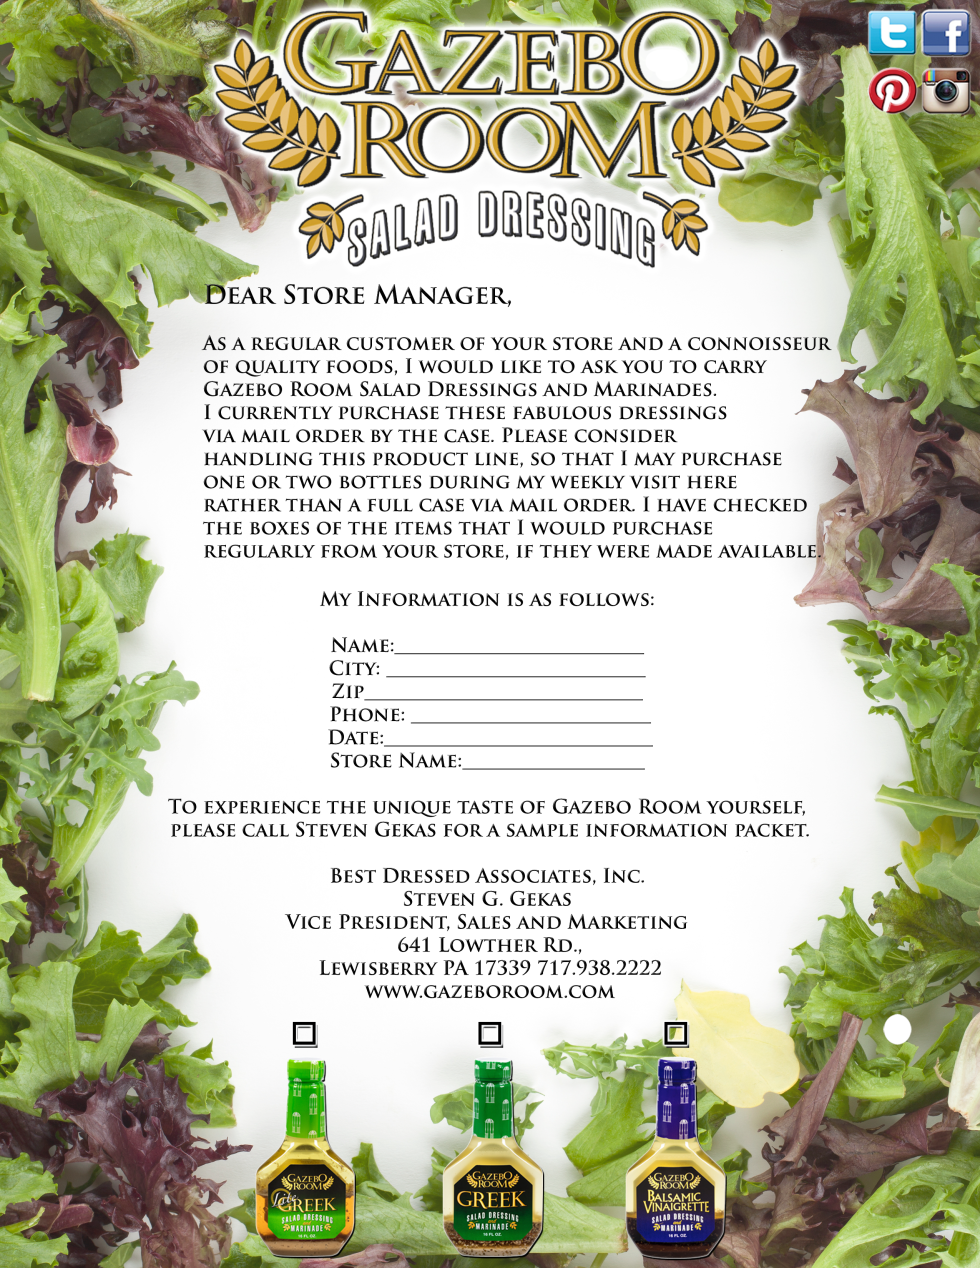 Gazebo Room Salad Dressing Product Request Form